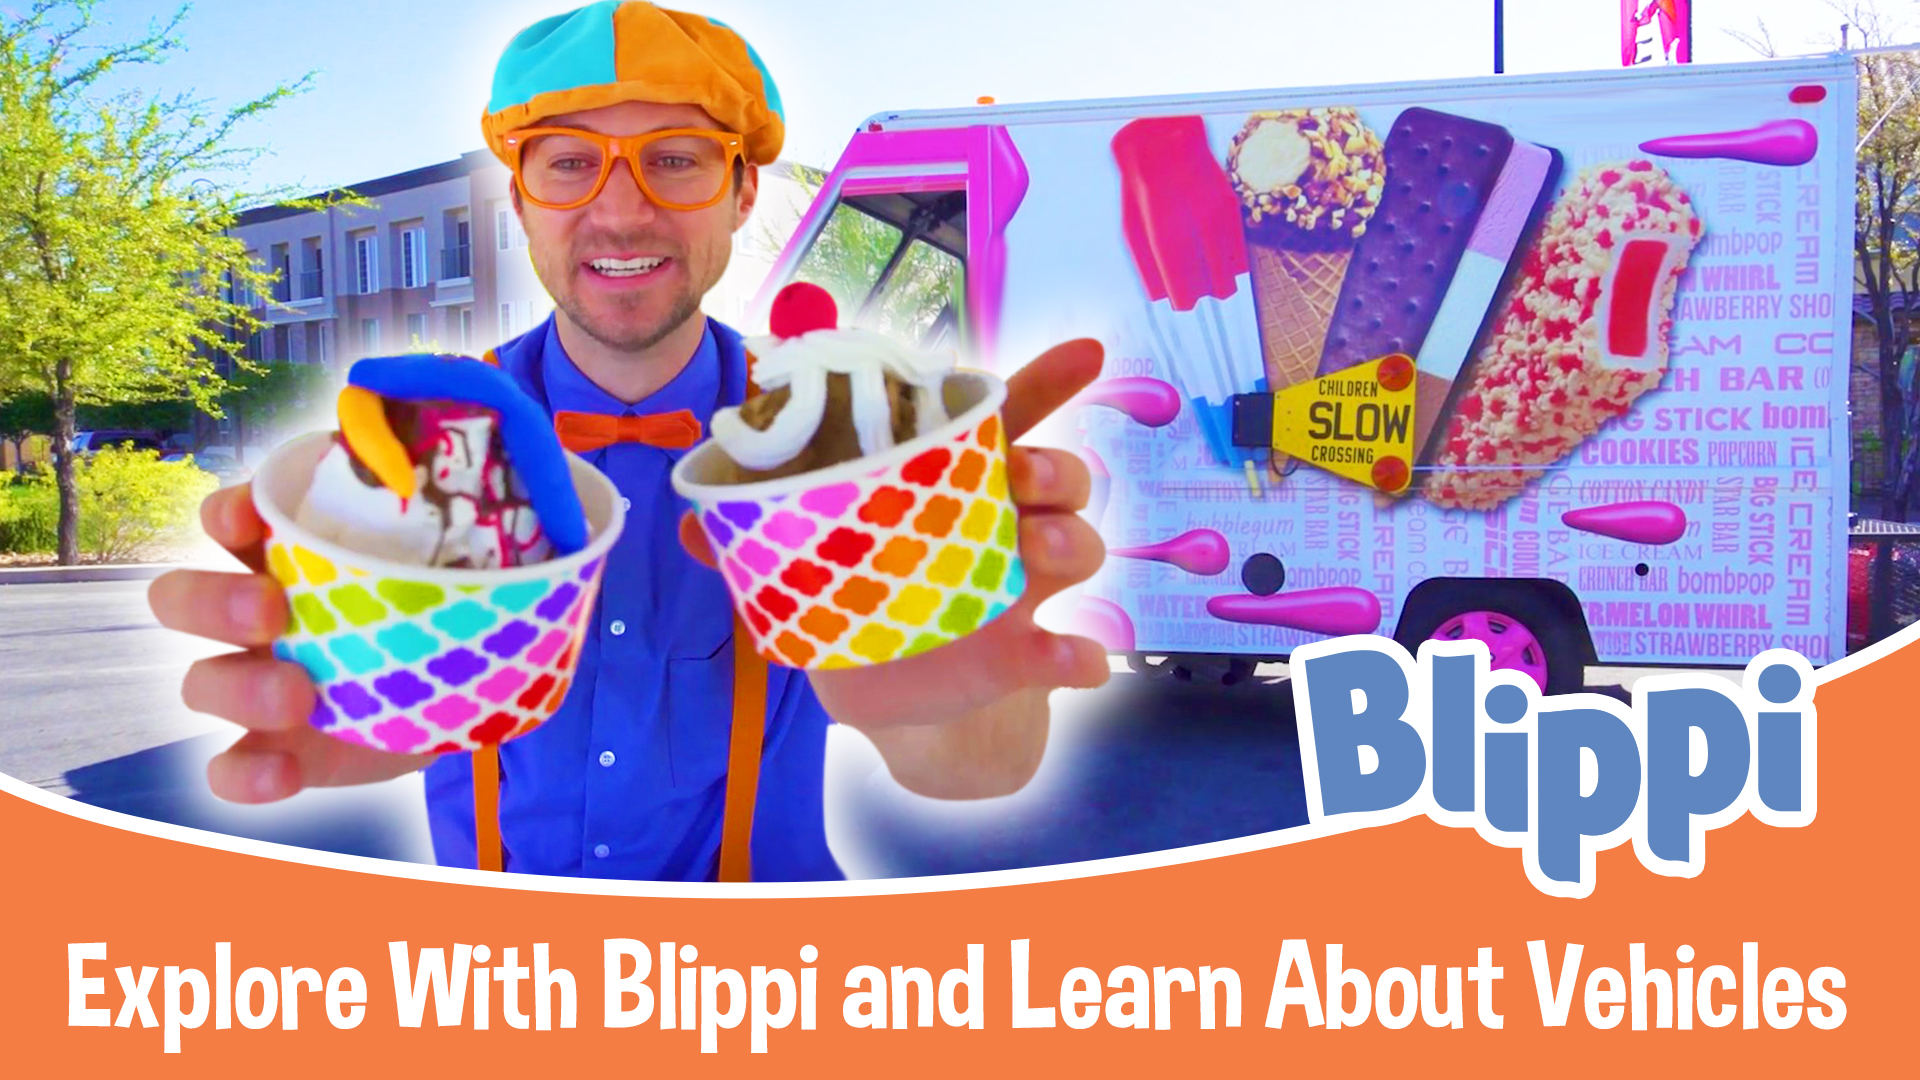 Blippi - Explore With Blippi and Learn About Vehicles